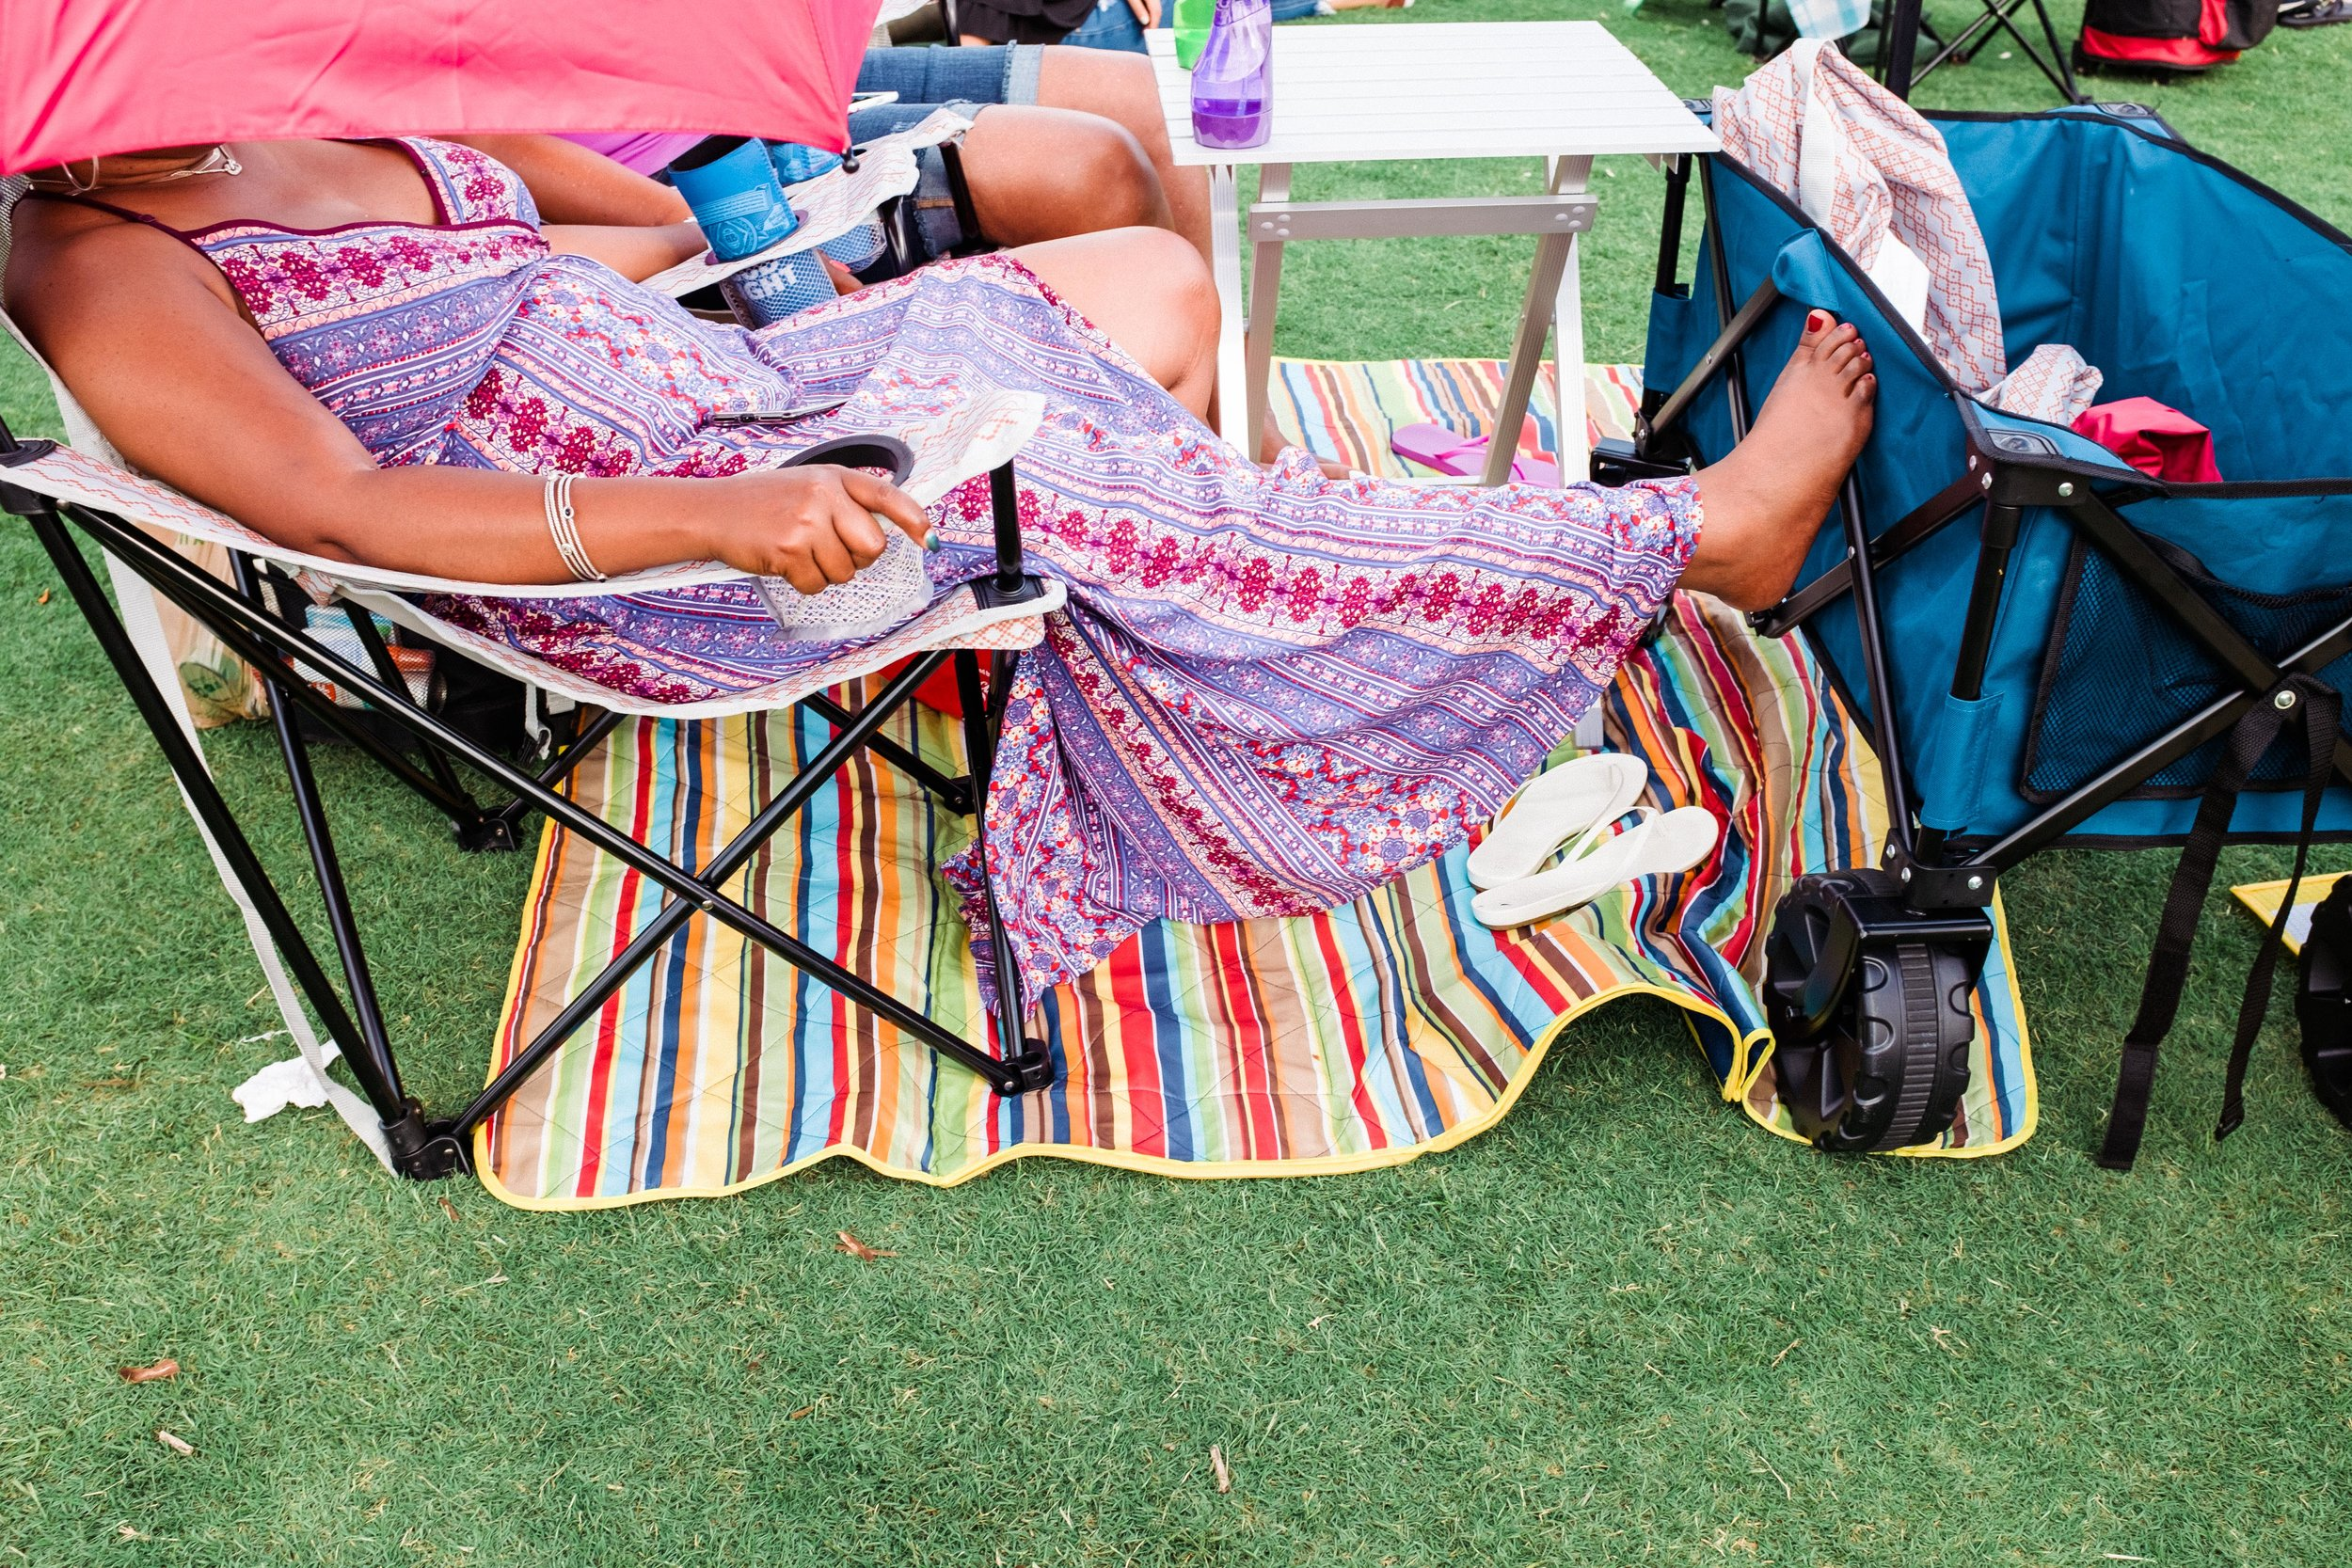 atlanta-jazz-festival-attendee-relaxing-in-chair